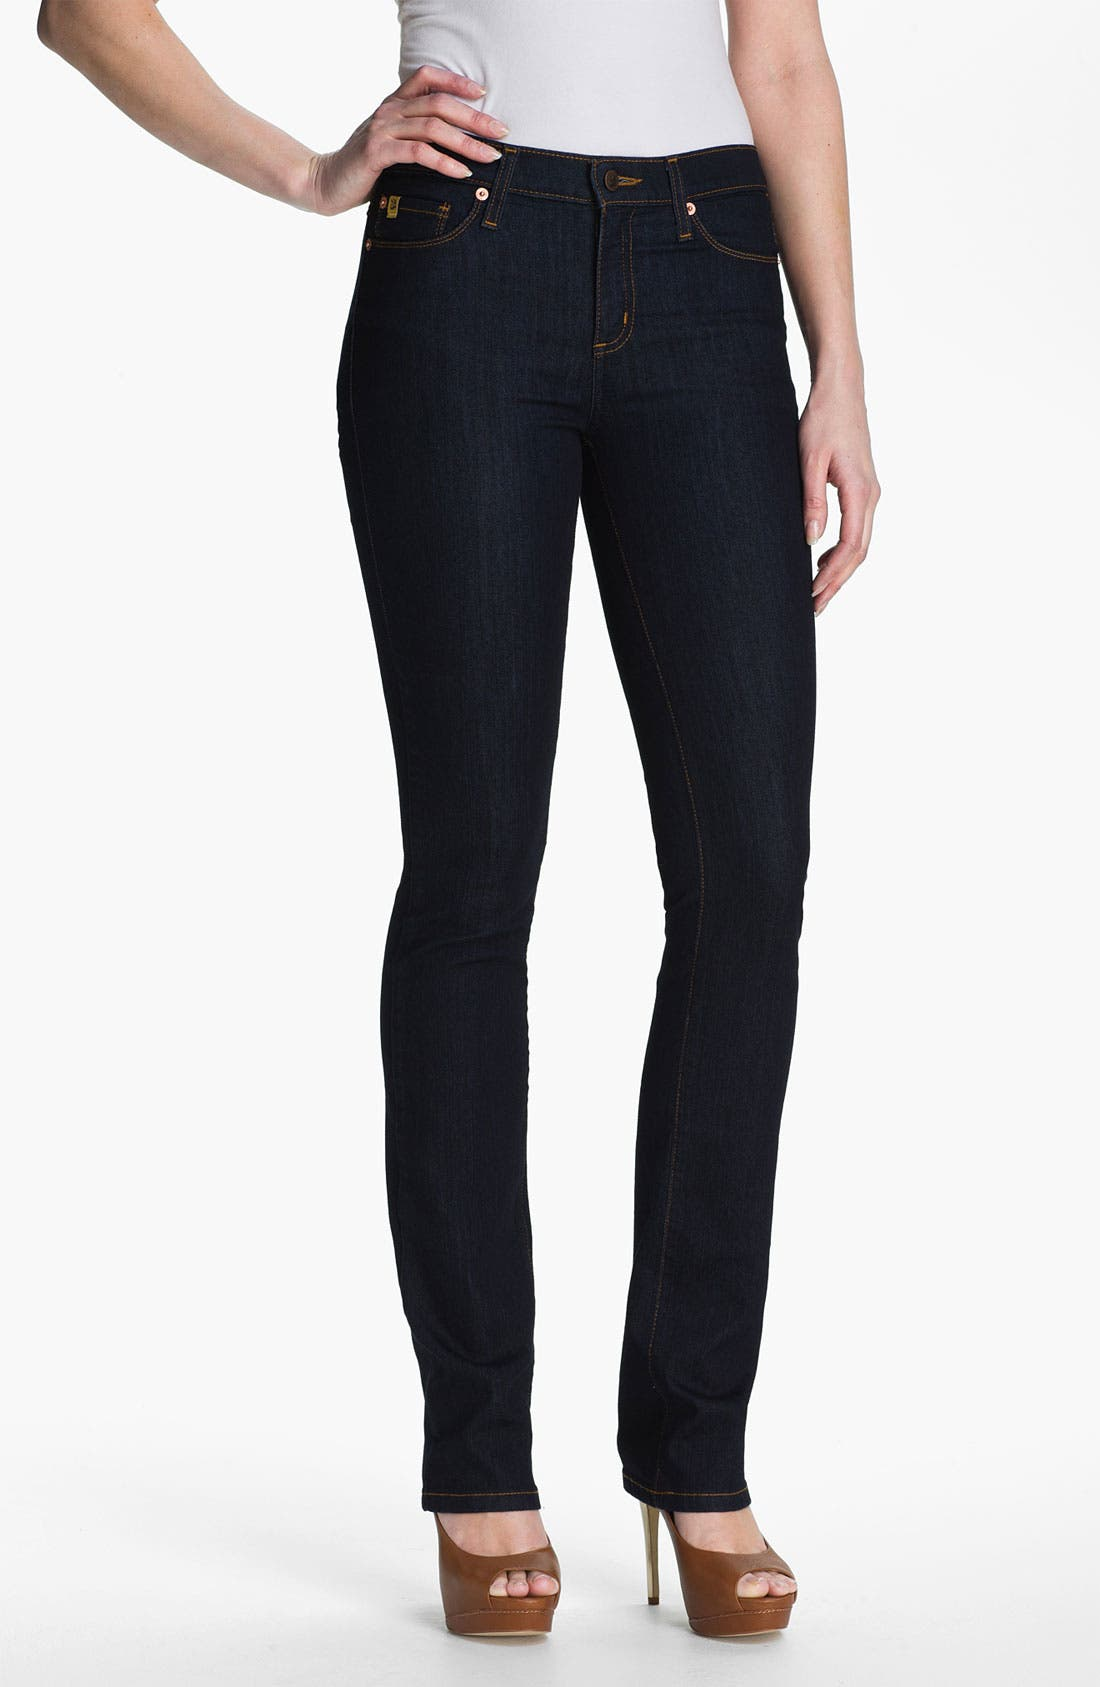 Alternate Image 1 Selected - Second Yoga Jeans Straight Leg Jeans